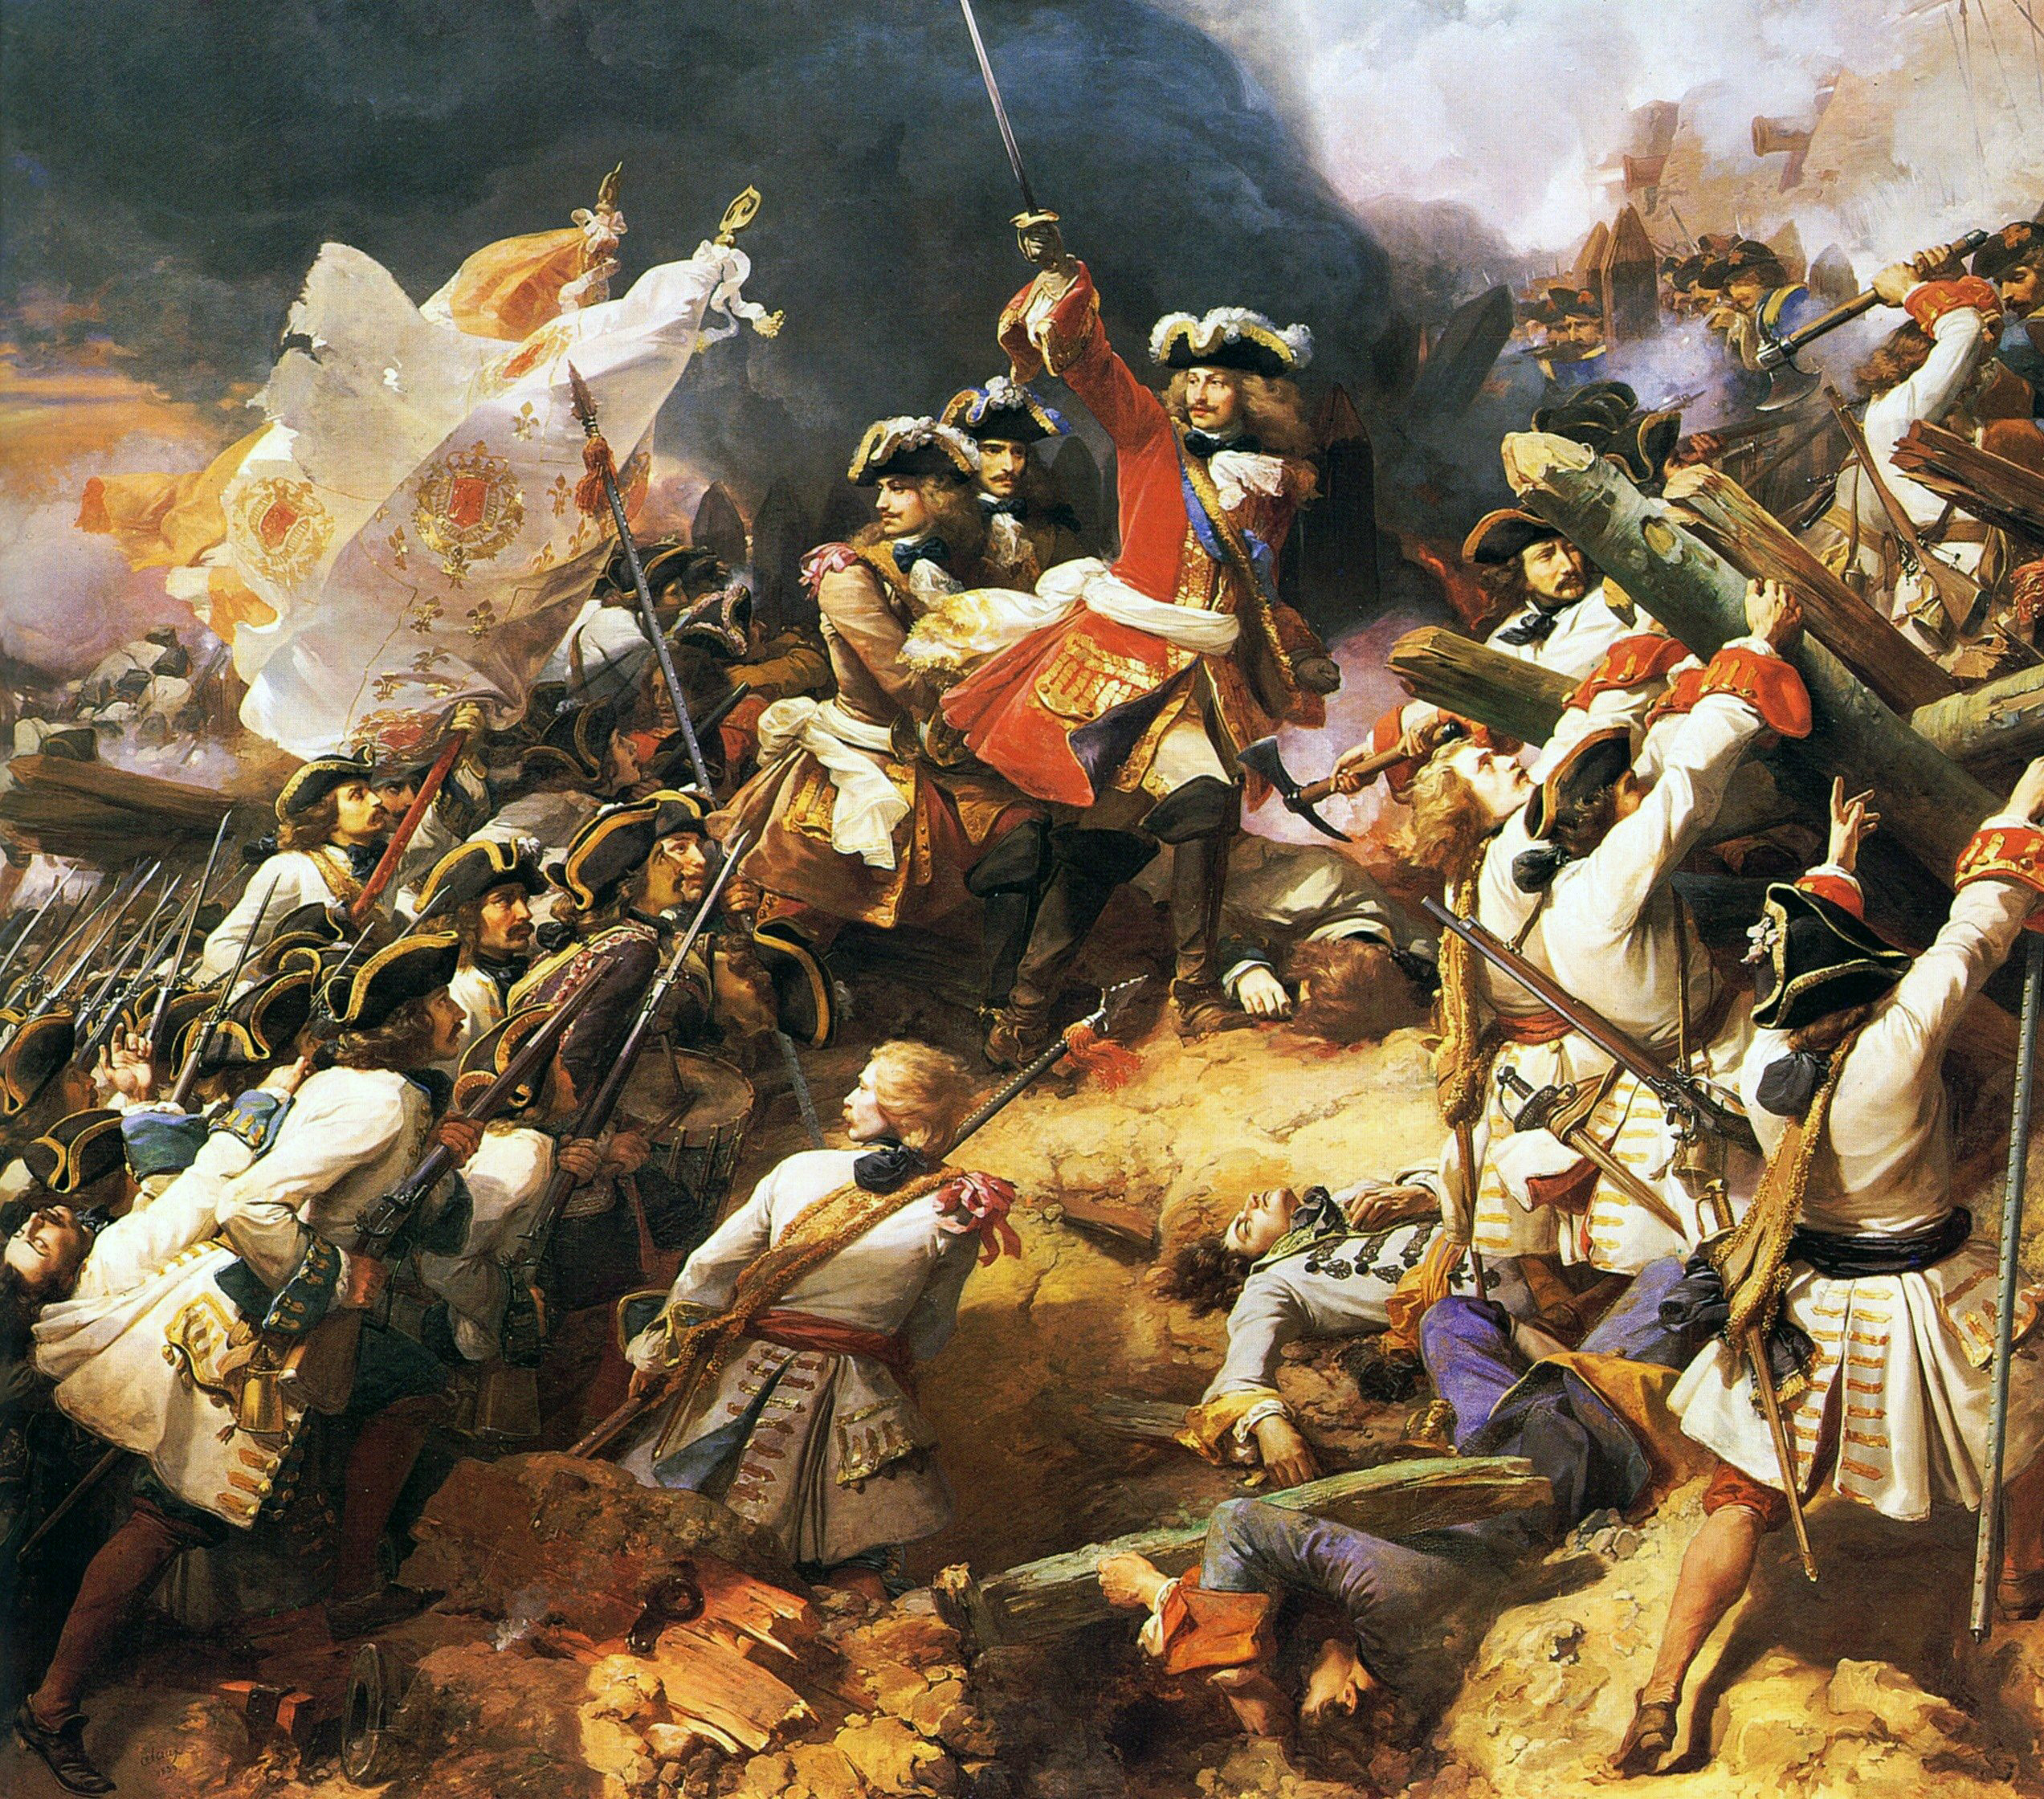 Battle of Denain. (1712). Painting by Jean Alo.